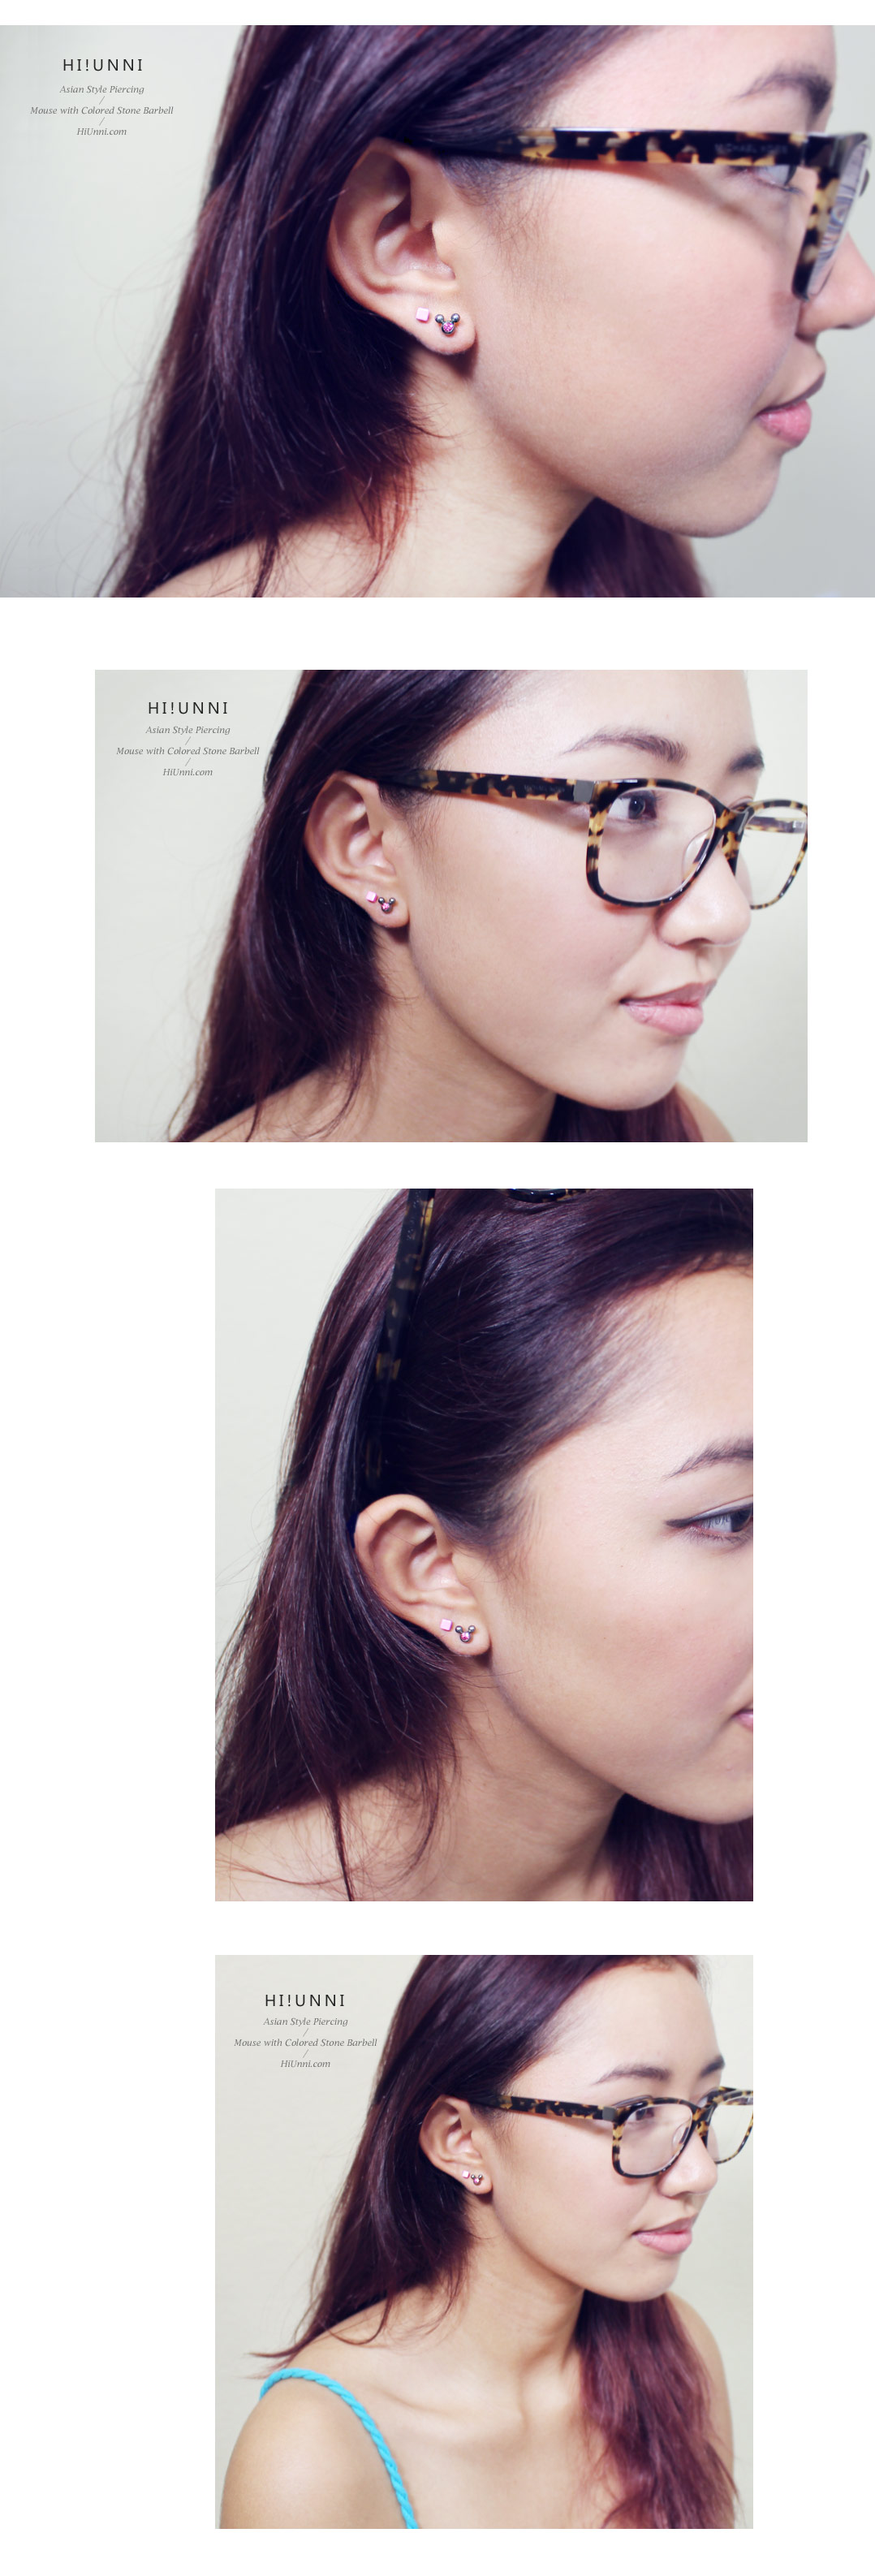 ear_studs_piercing_Cartilage_earrings_tragus_16g_316l_korean_asian_style_barbell_mouse_animal_character_4